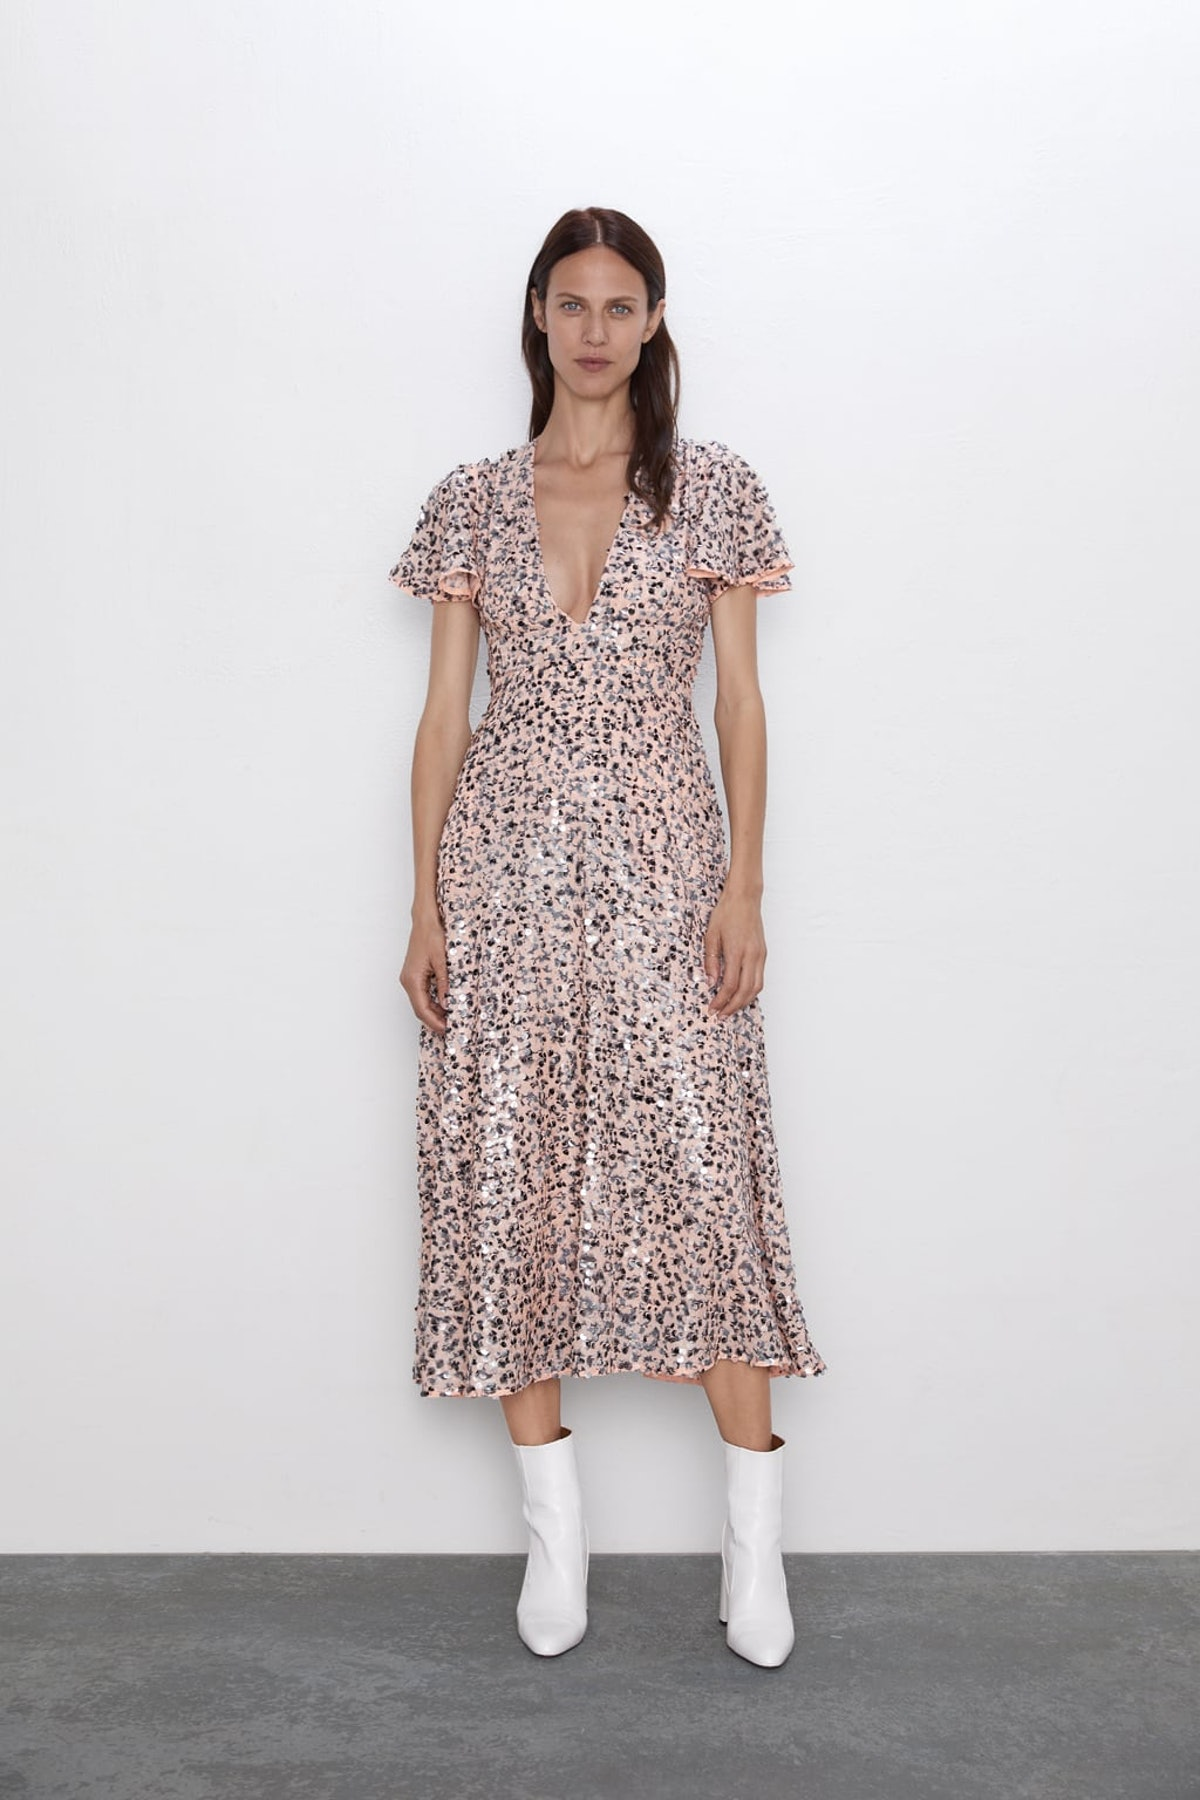 Limited Edition Sequins Dress